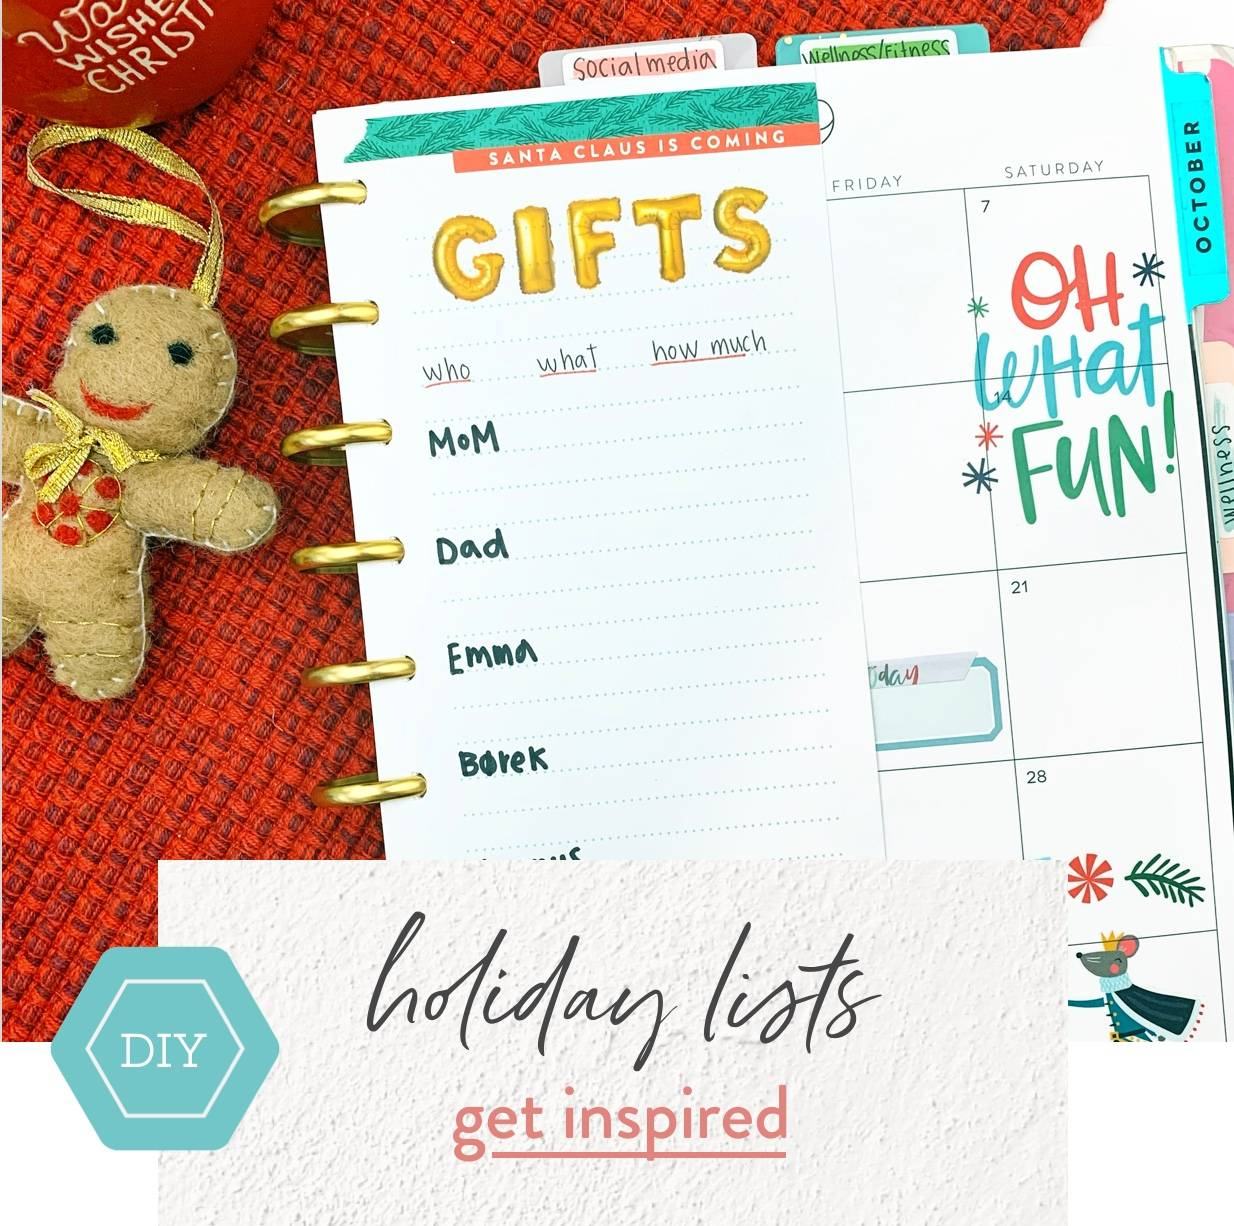 diy holiday lists get inspired